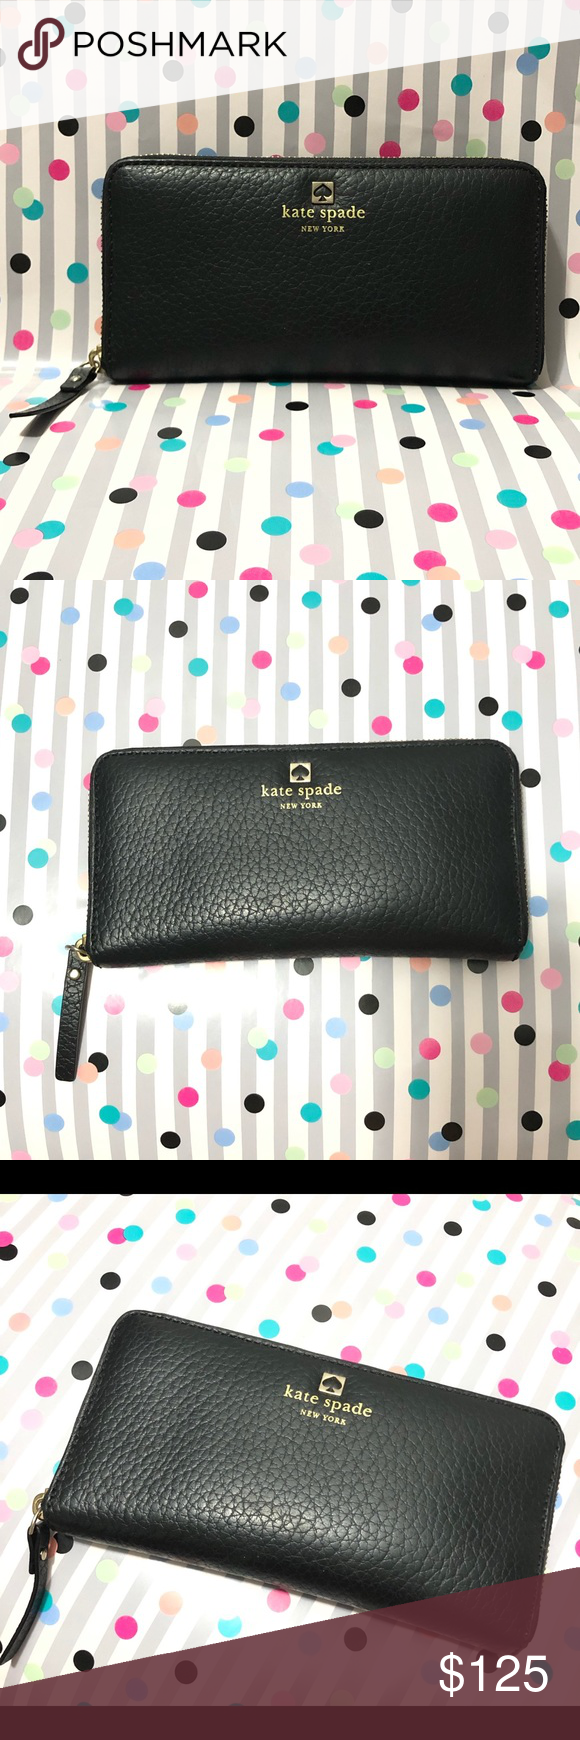 KATE SPADE BLACK WALLET KATE SPADE BLACK WALLET  Beautiful black wallet in great condition.  LIKE NEW!